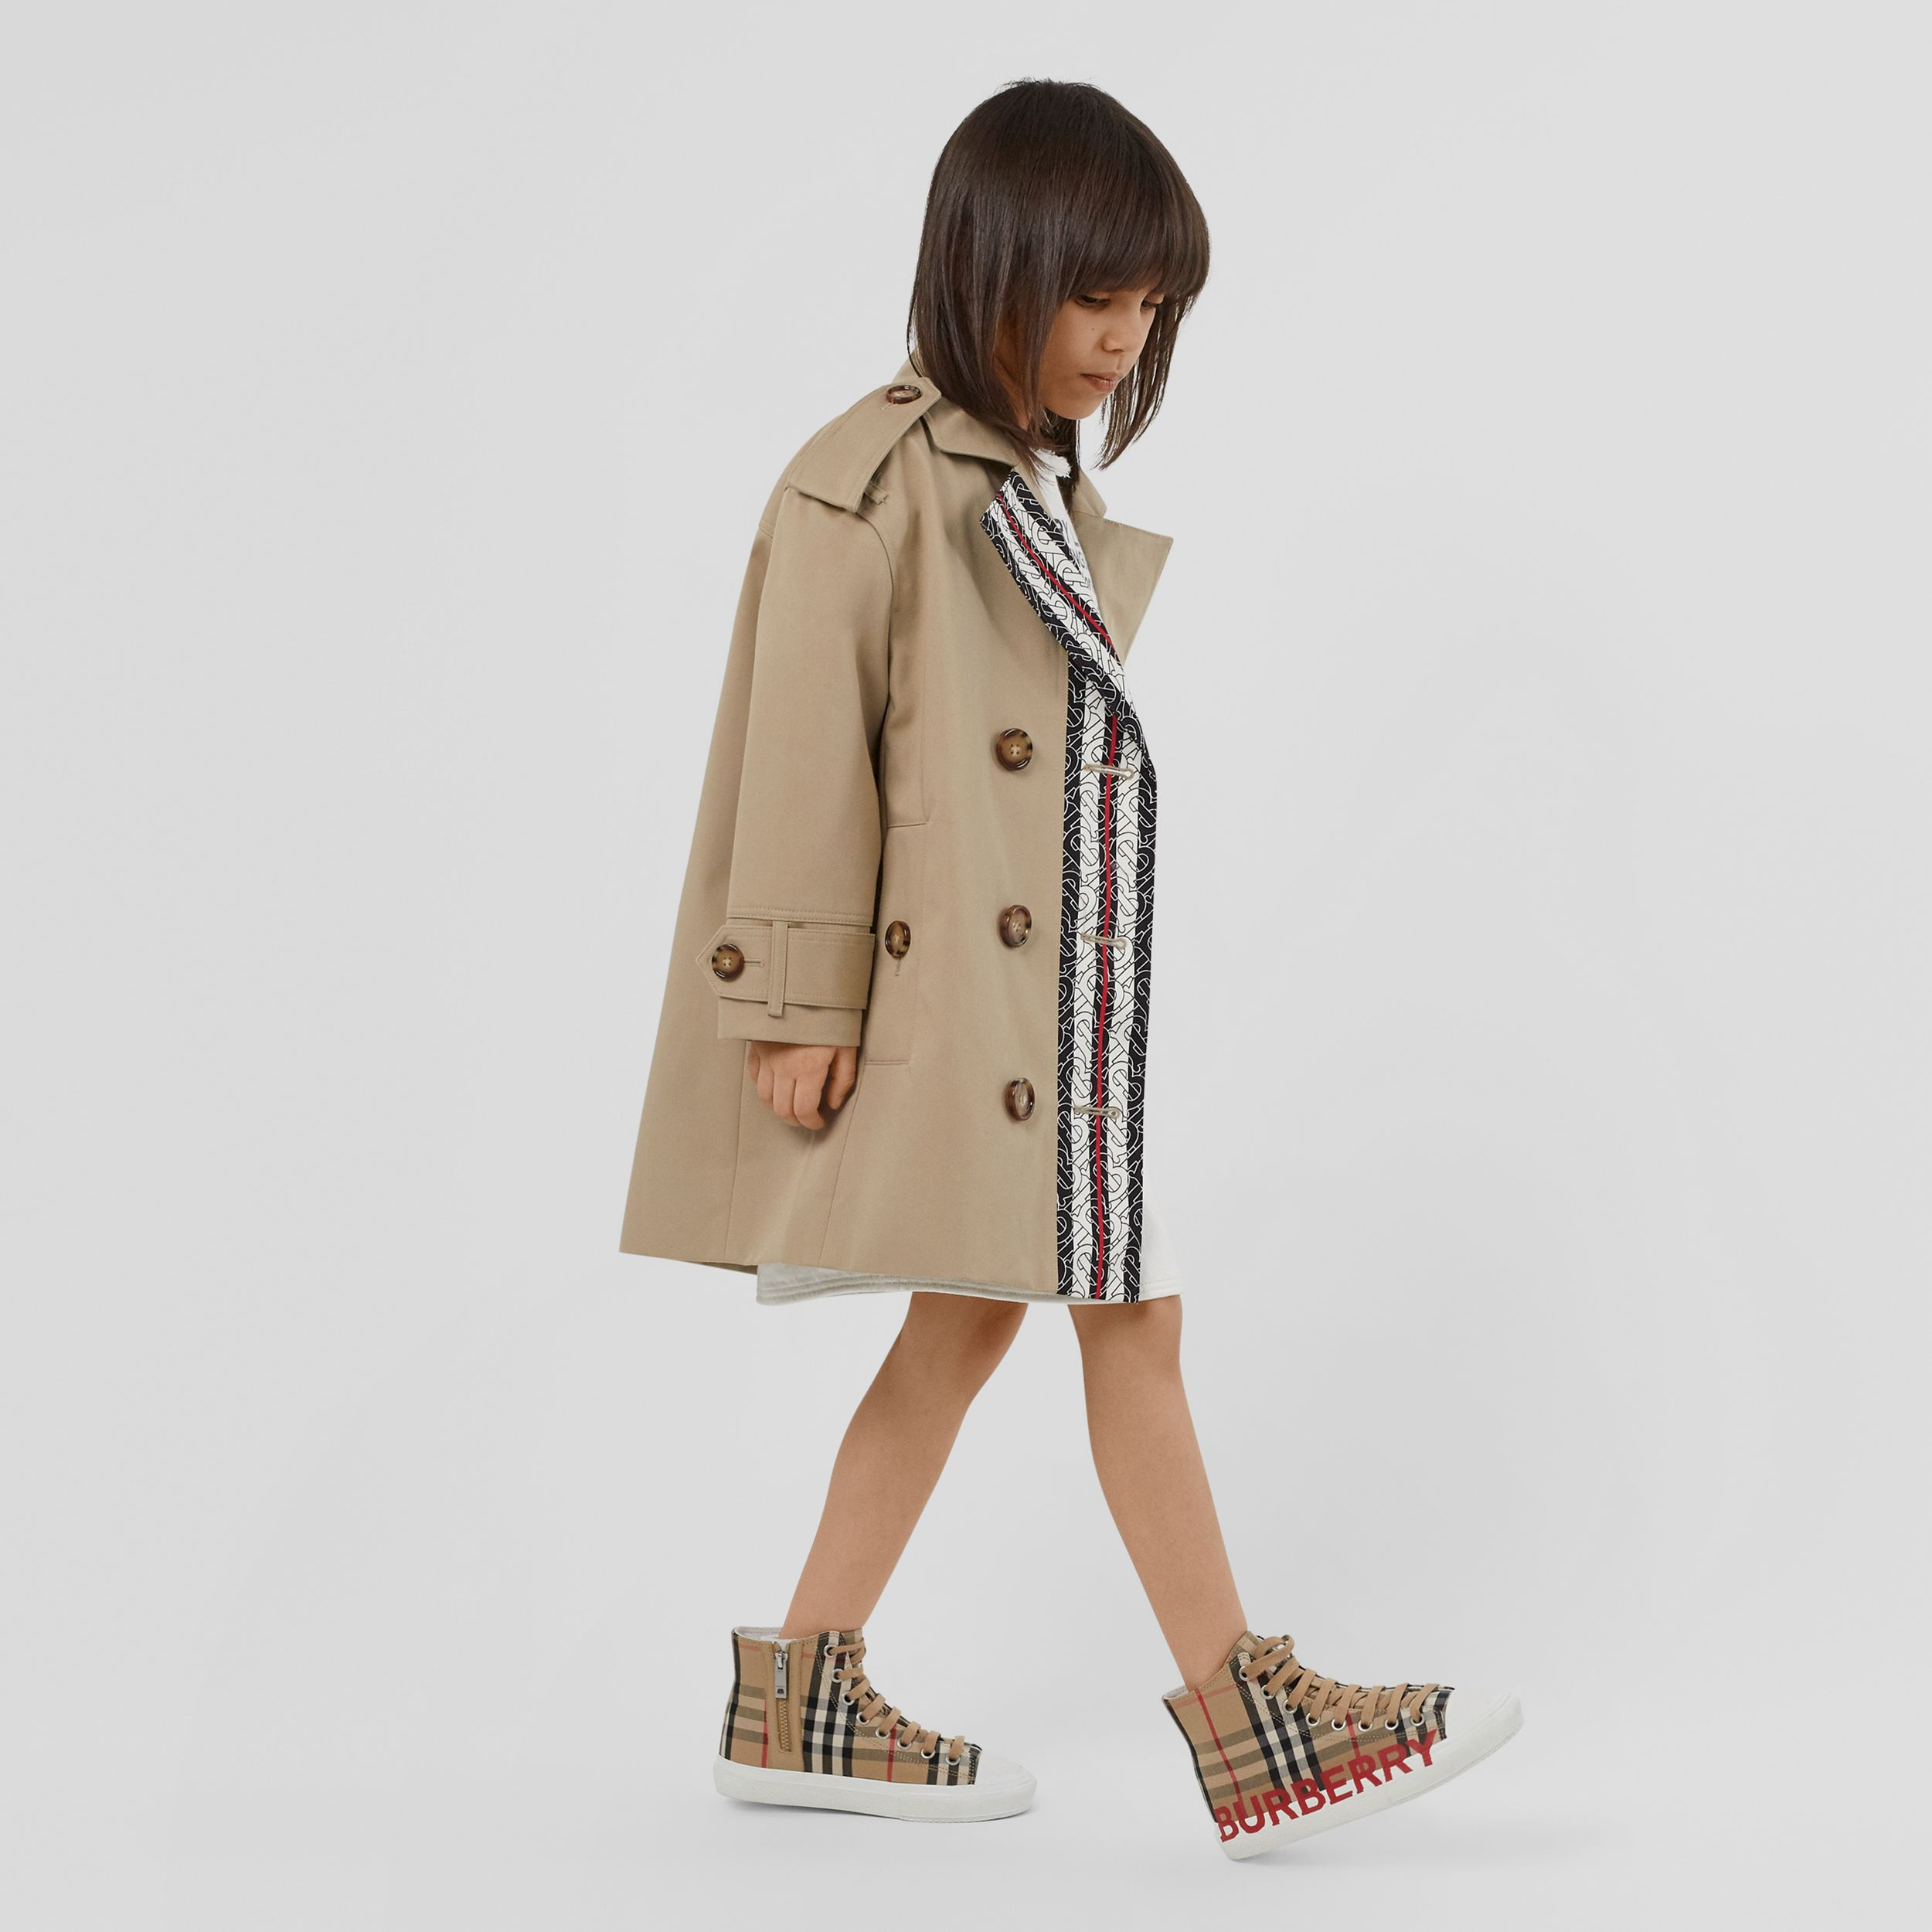 Monogram Stripe Print Cotton Trench Coat in Honey | Burberry Australia - 3